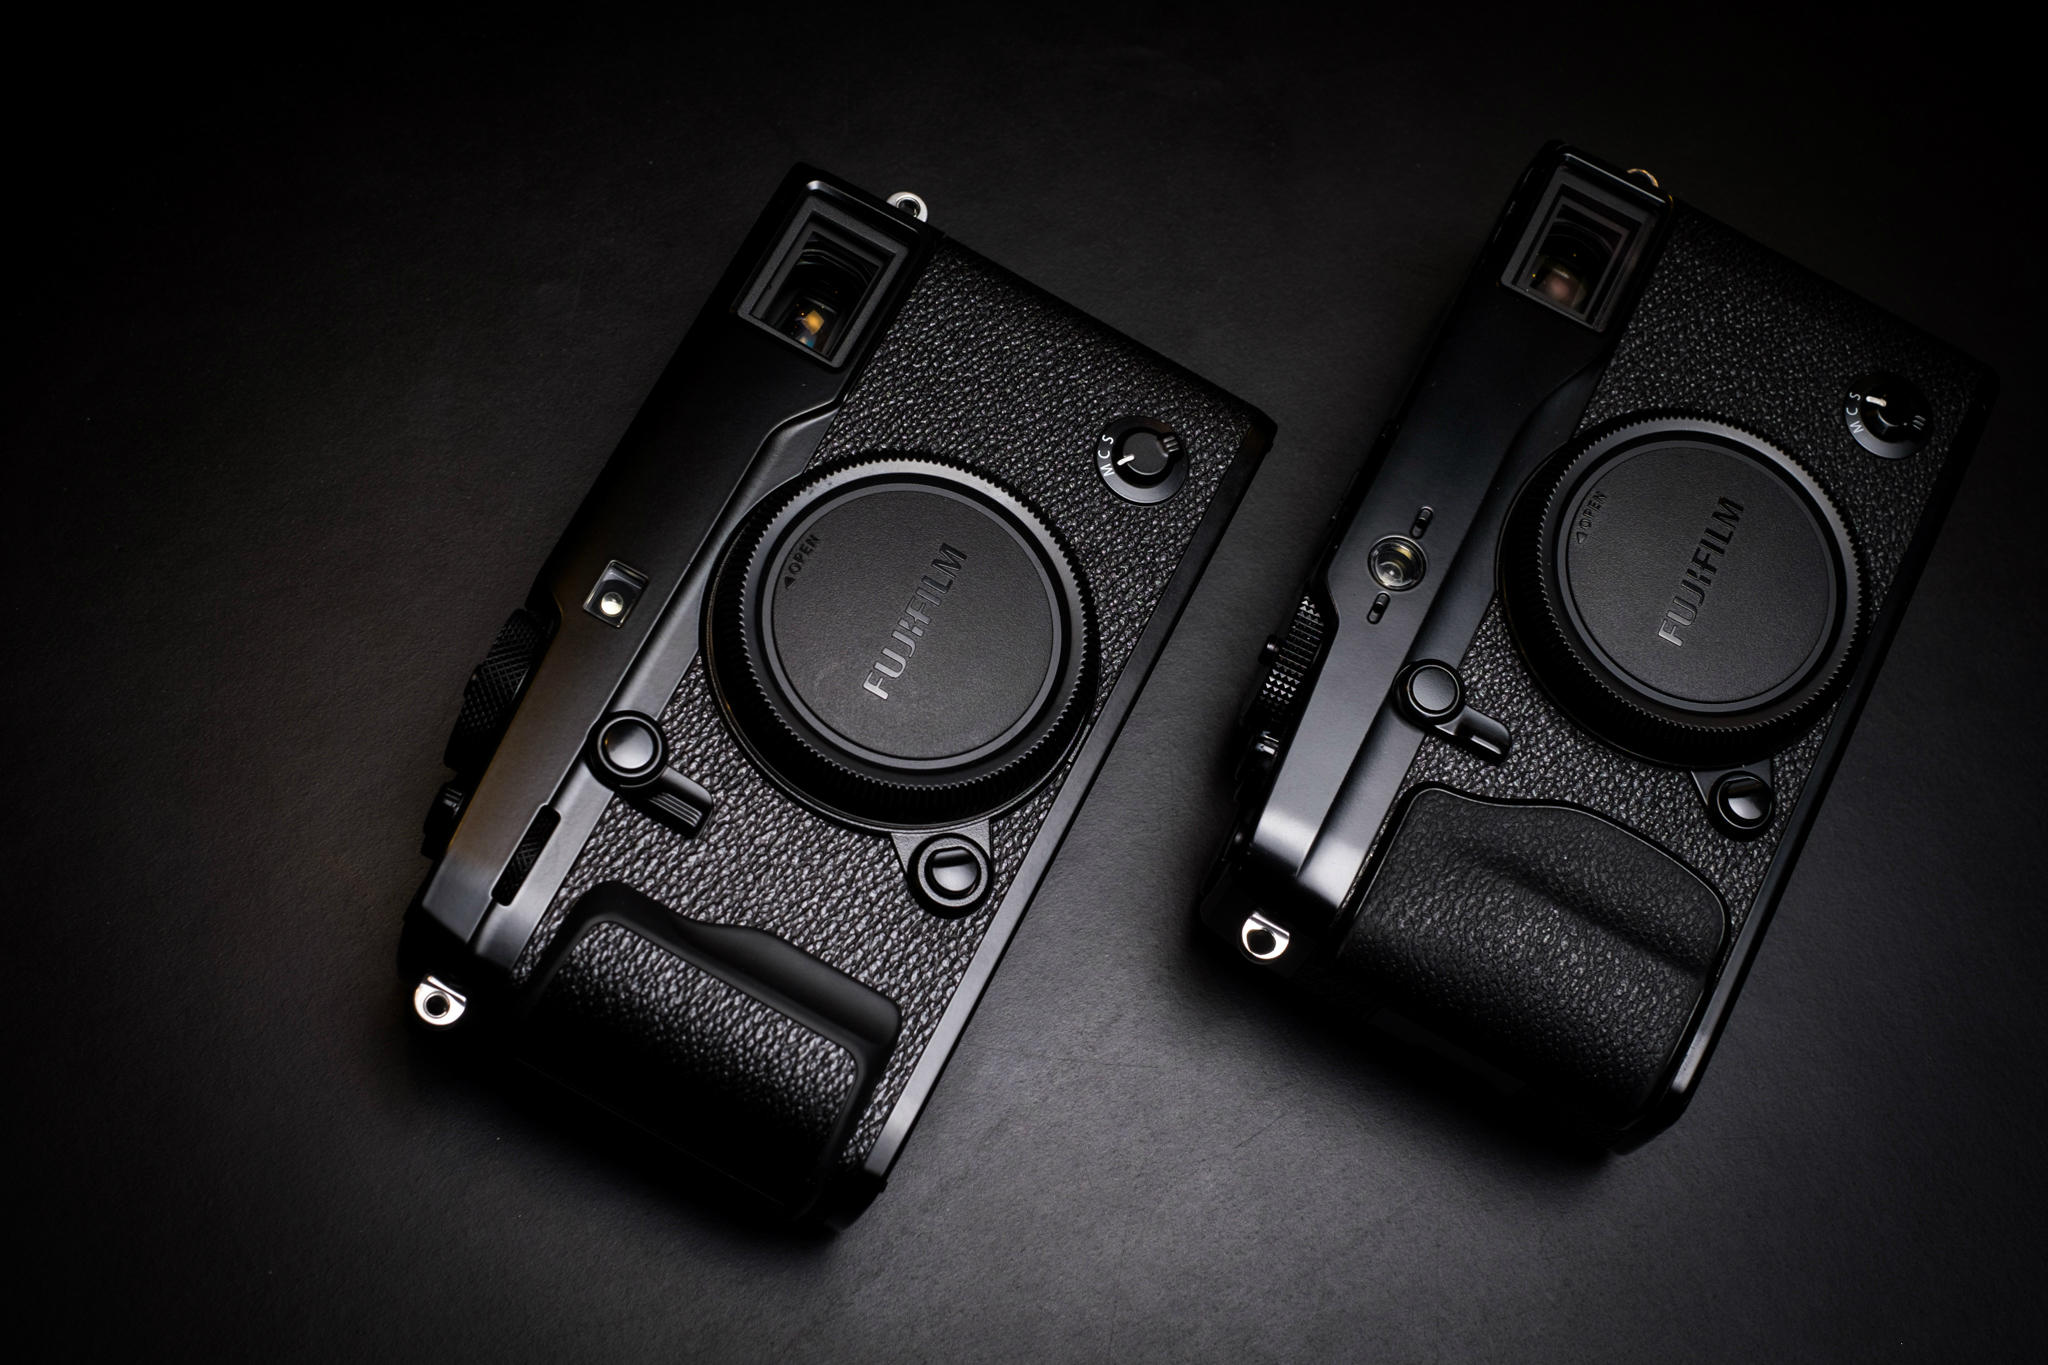 Fujifilm x Pro2 Mirrorless Digital Camera Body Only